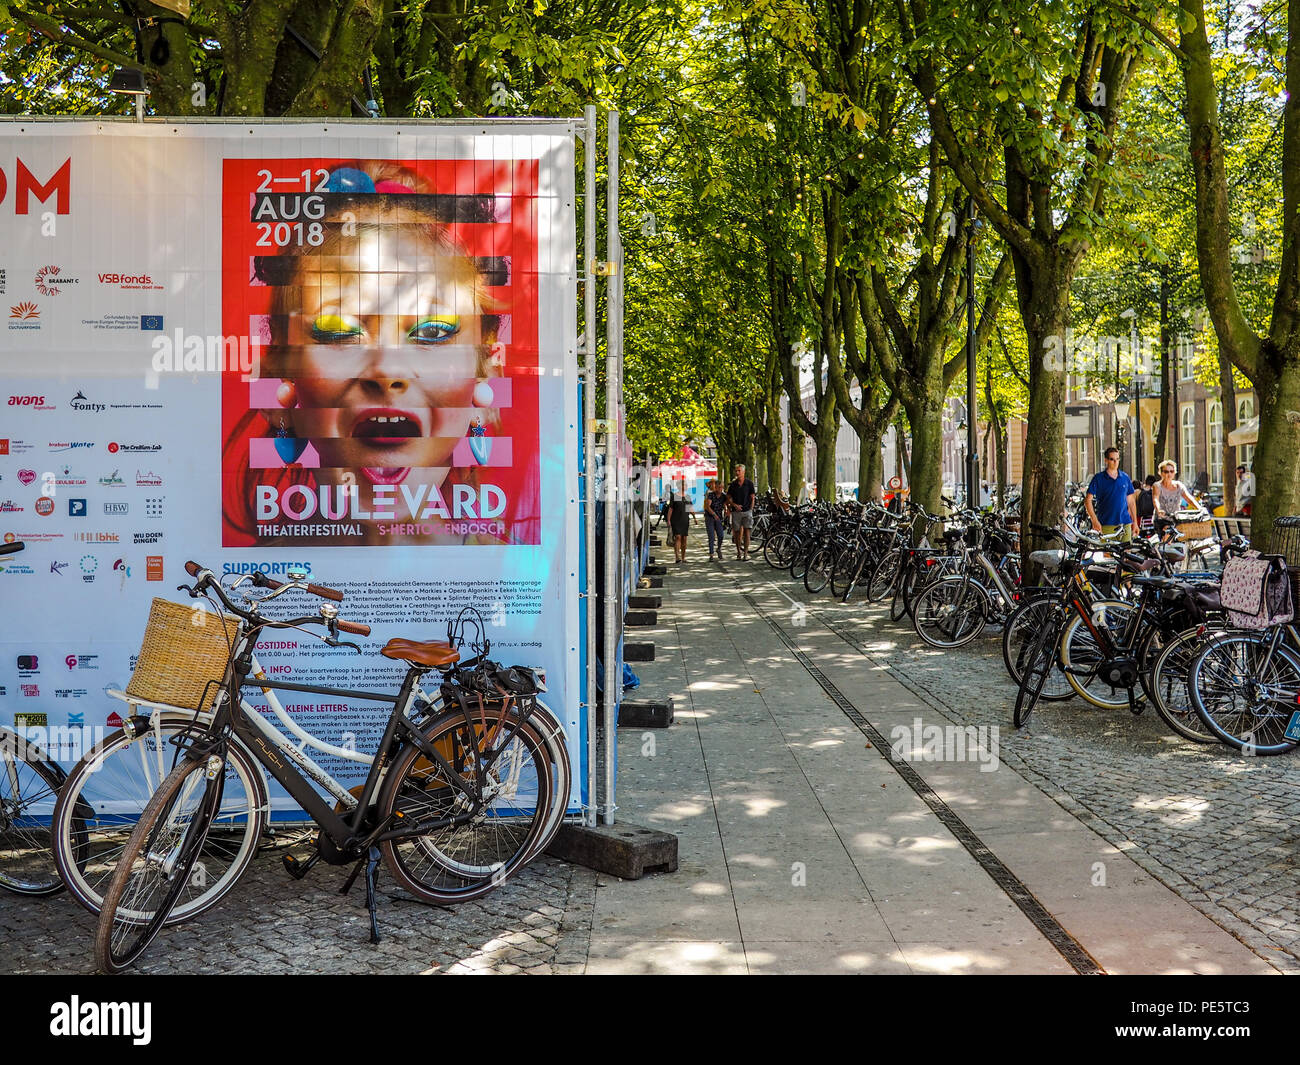 August 2018 - 's-Hertogenbosch, Netherlands: Large advertisement for the yearly Boulevard street theater festival - Stock Image